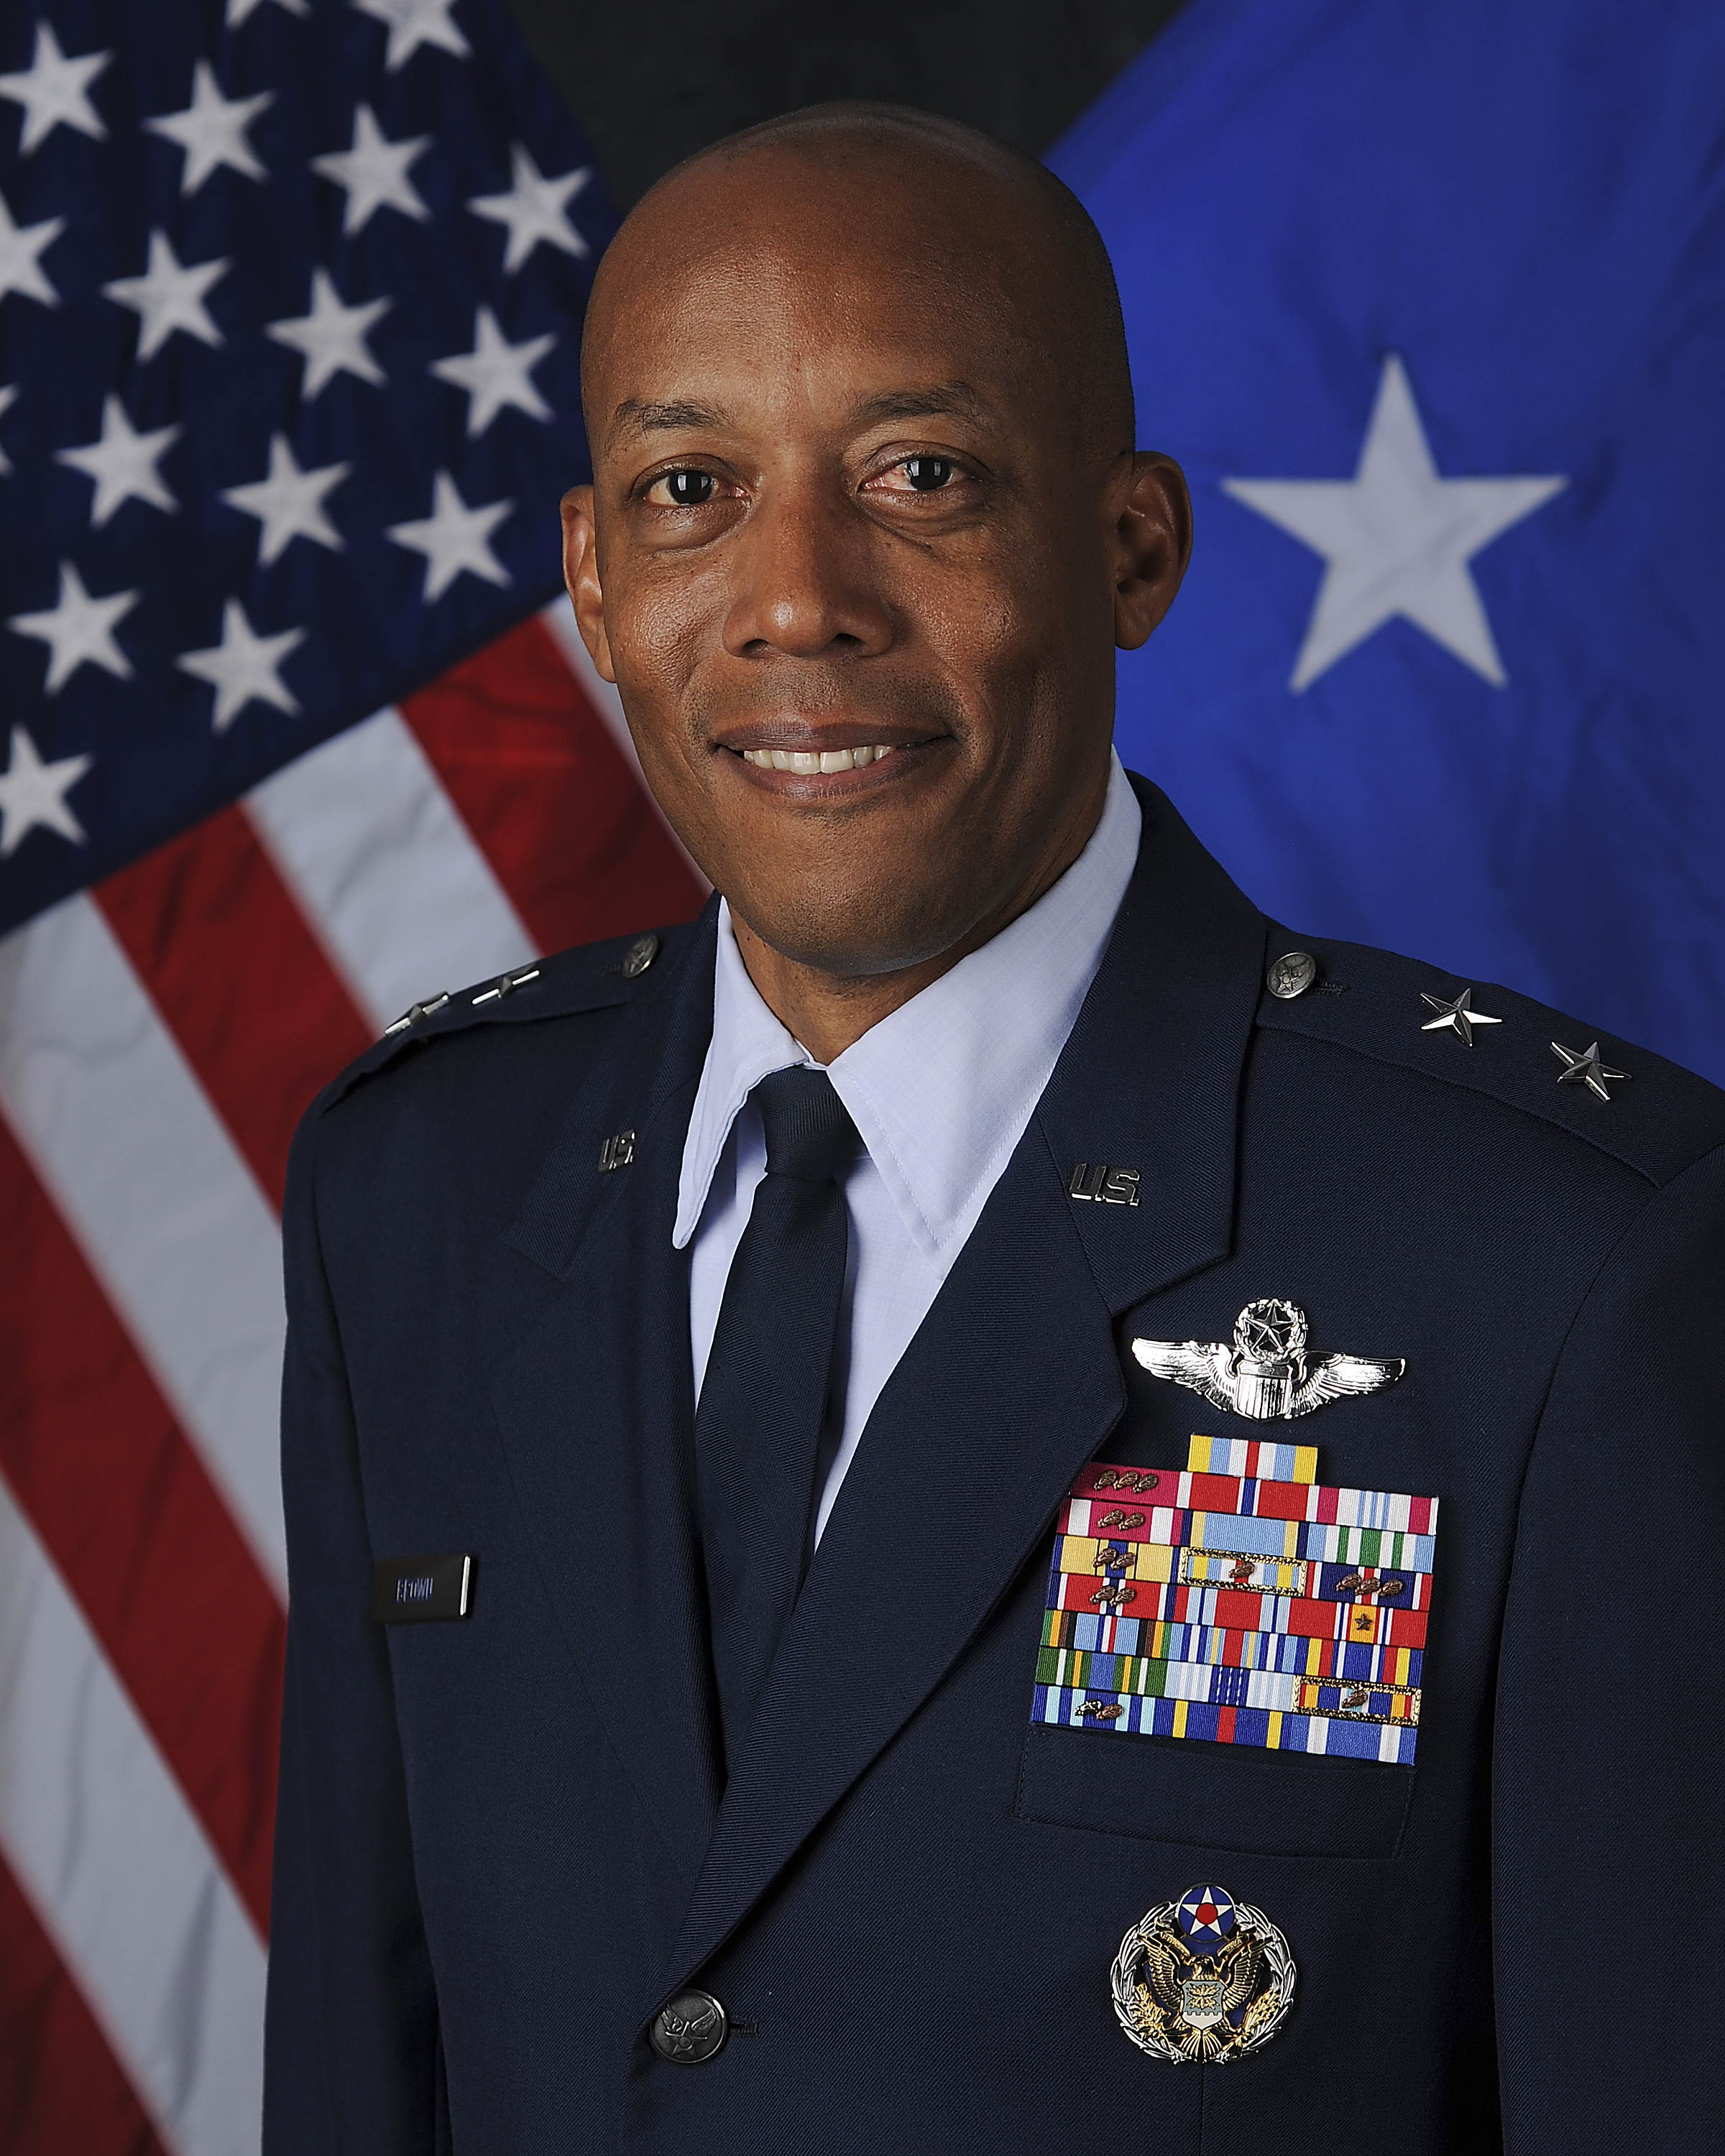 Commander for air war against ISIS nominated for CENTCOM position